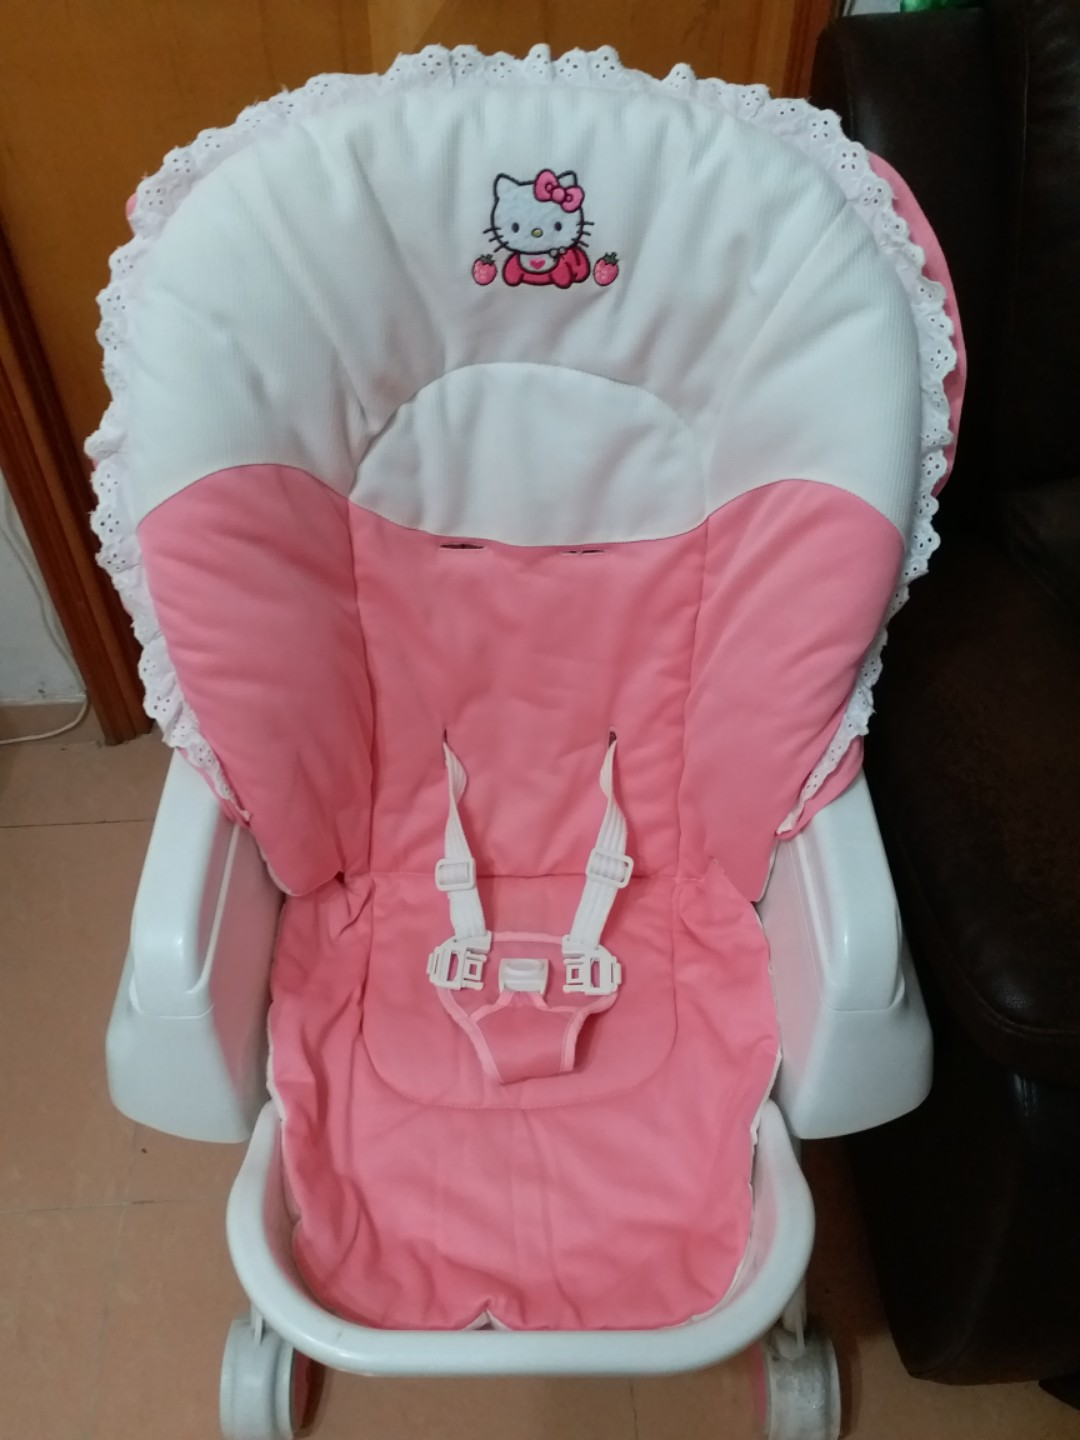 hello kitty high chair table chairs for sale www topsimages com babies kids prams strollers on carousell jpg 1080x1440